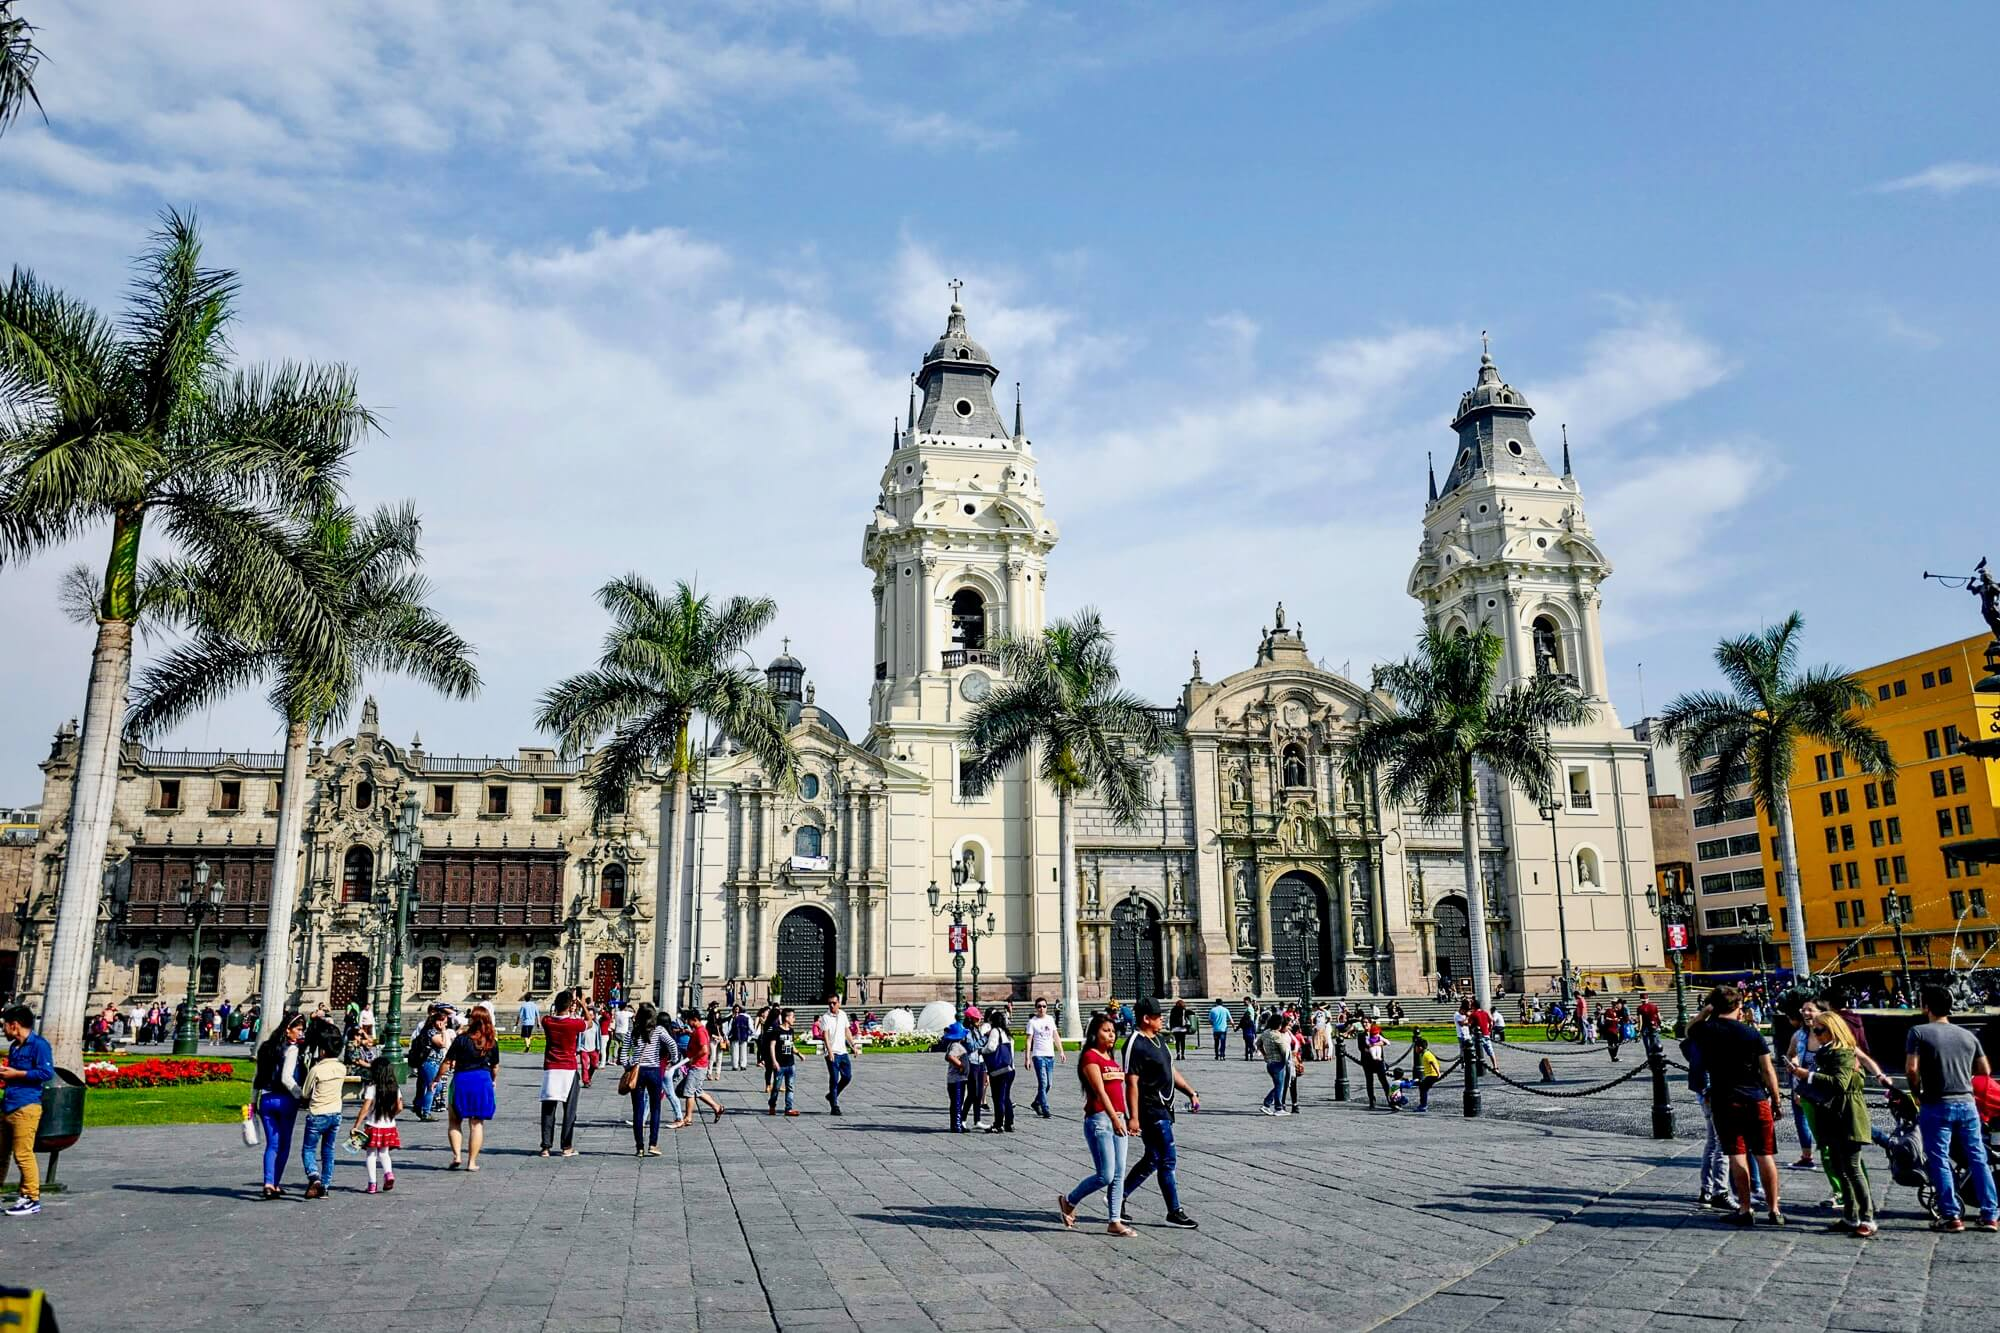 Plaza de Armas in Lima with the Cathedral and the Archbishops Palace